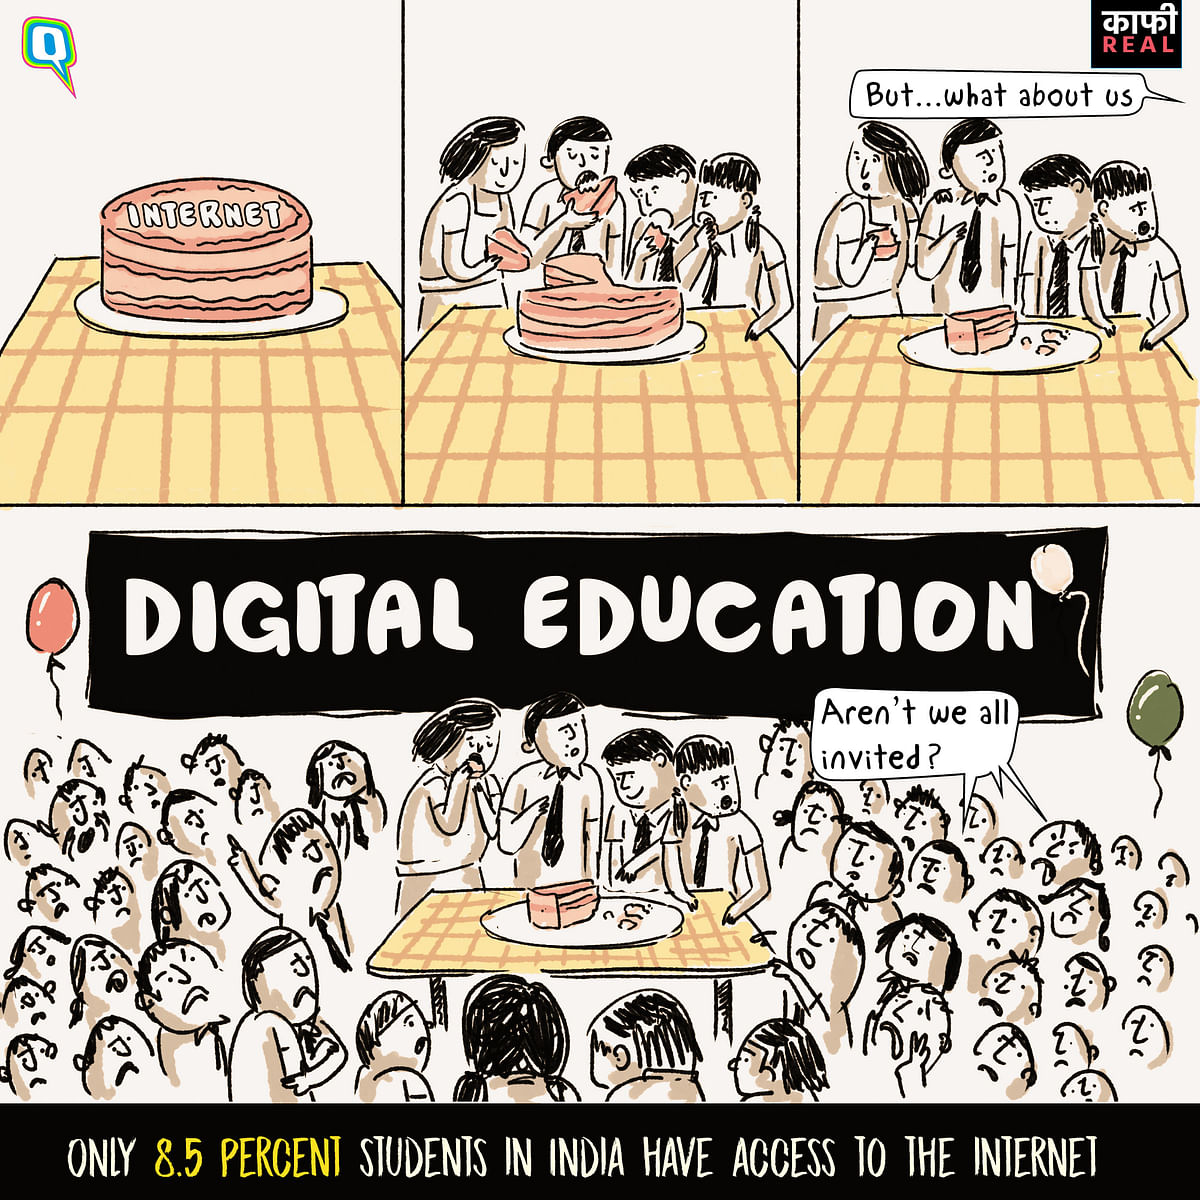 Kaafi Real: Not All Kids Get a Piece of the Digital Education Pie